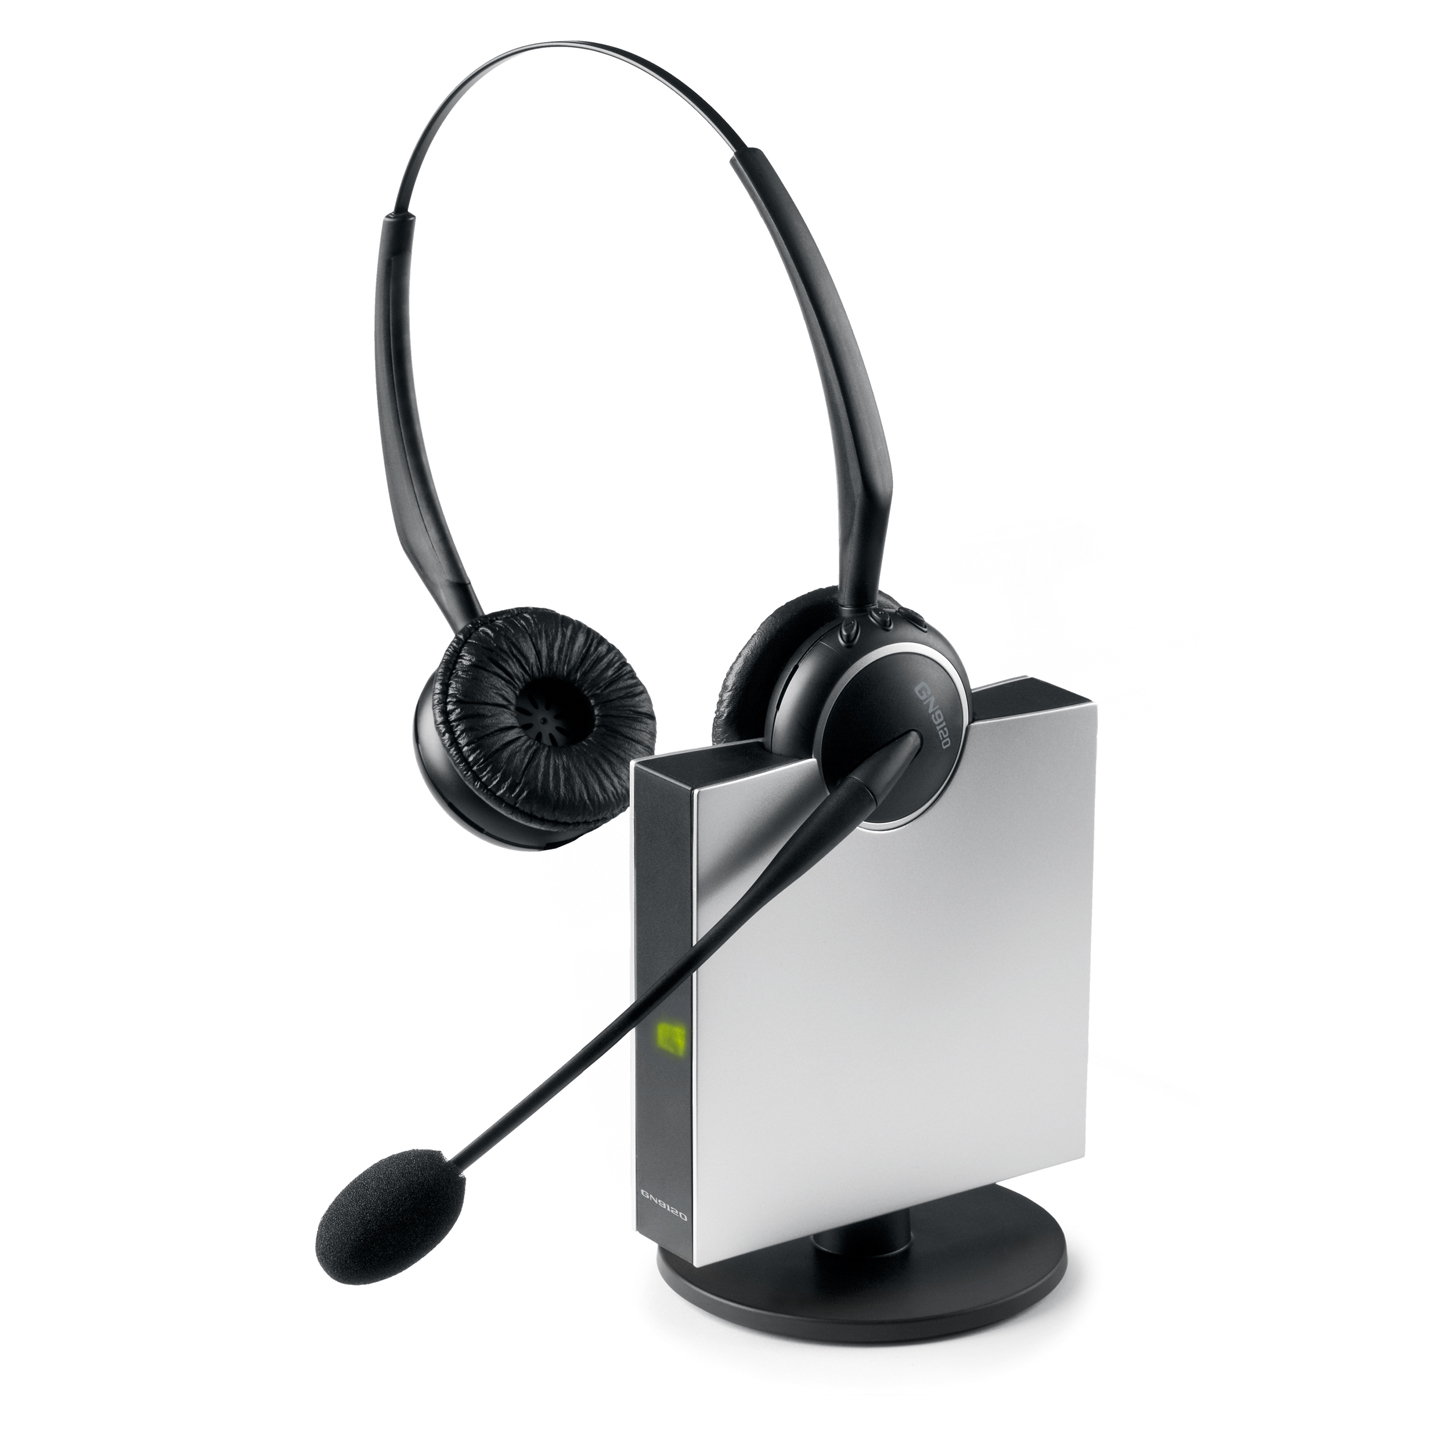 Jabra pro 9465 wireless headset with touch screen base, multi-use.